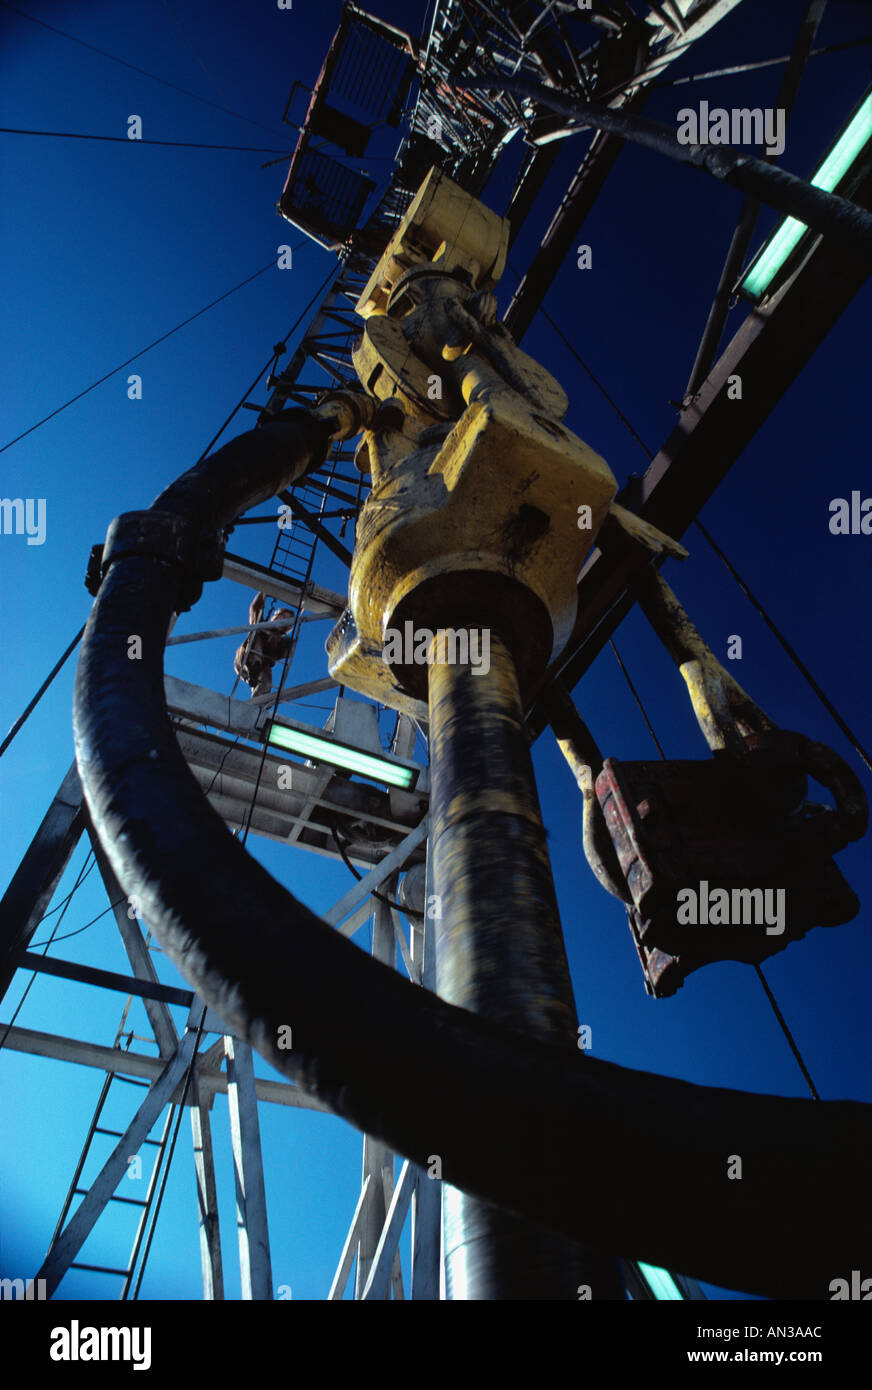 Drill Tower Stock Photos & Drill Tower Stock Images - Alamy